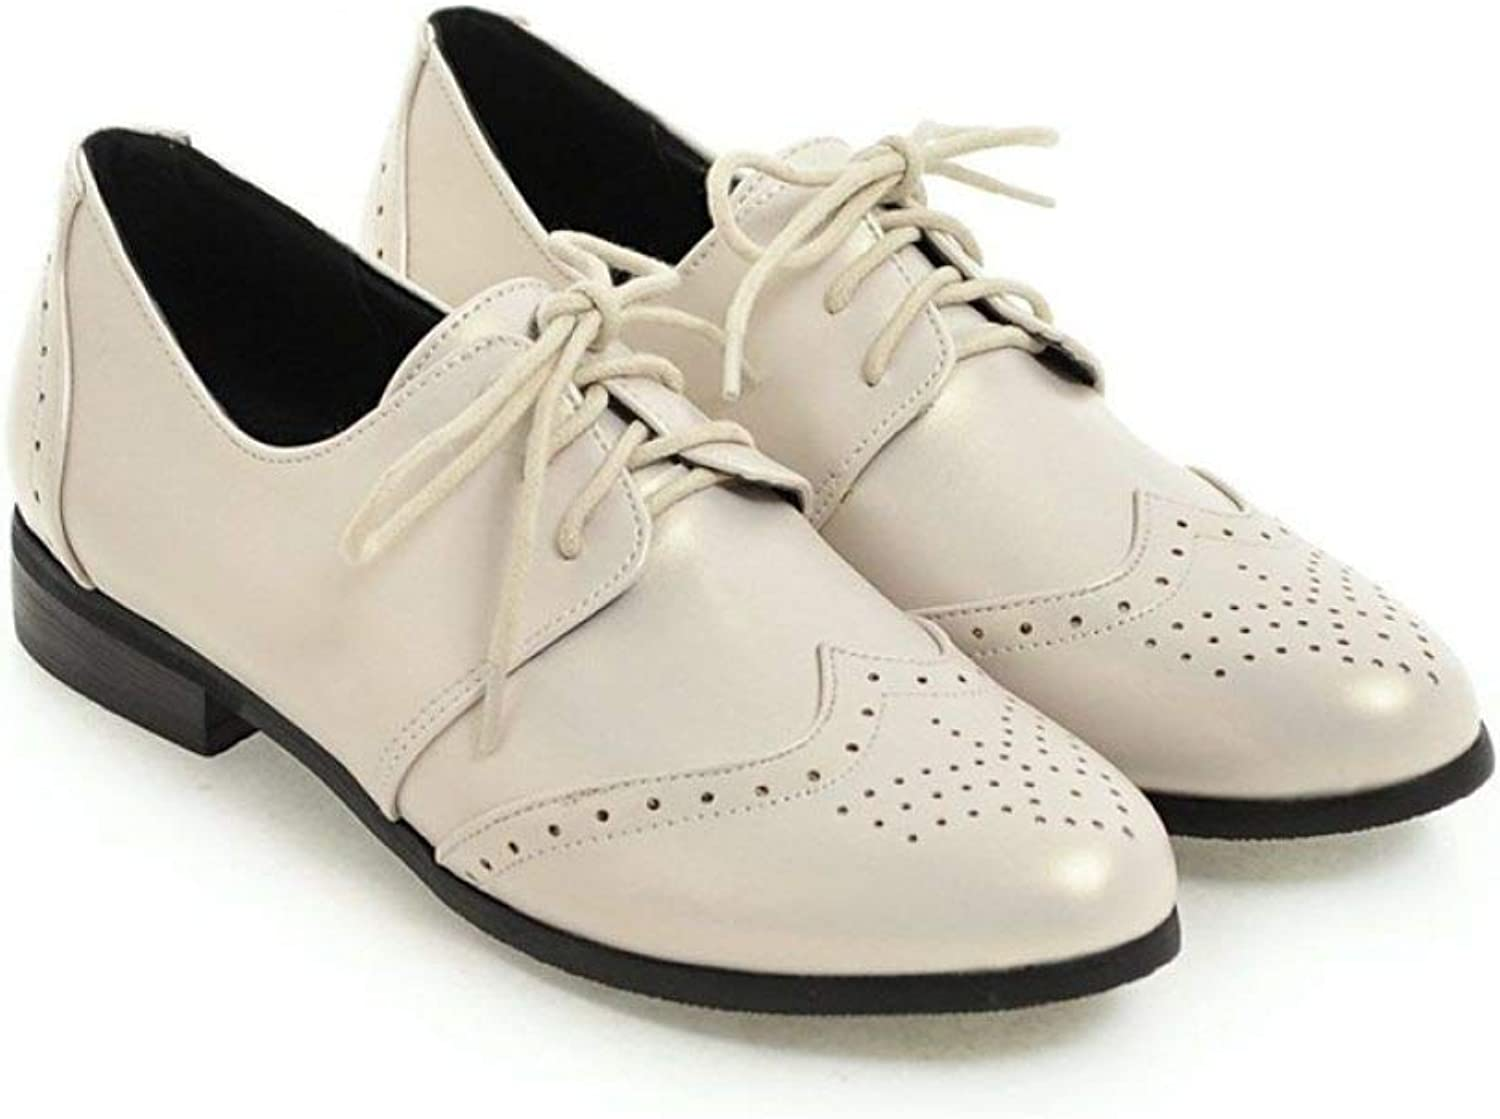 Fay Waters Women's Leather Perforated Oxfords Lace-up Low Heel Round Toe Brogue Wingtip Flat shoes